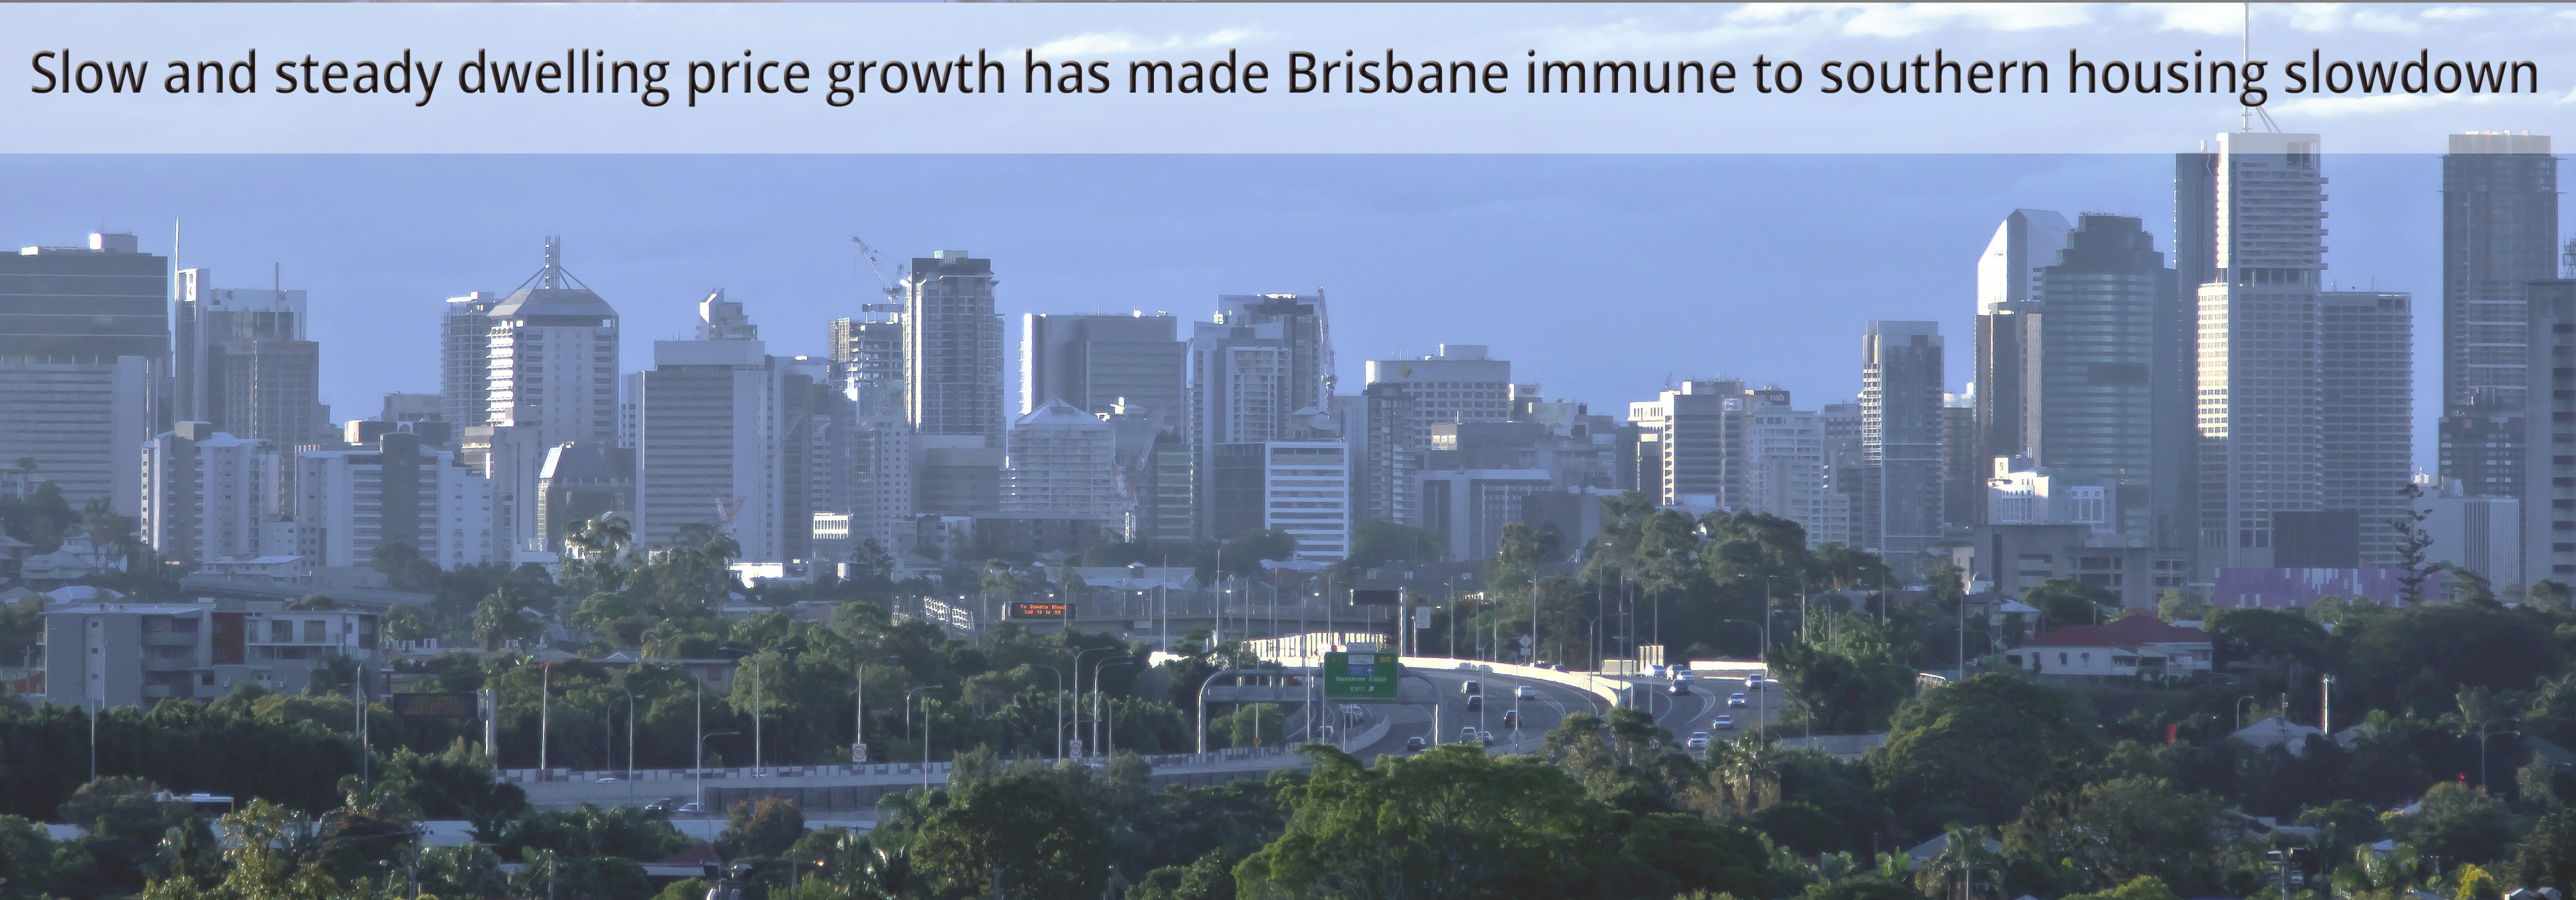 Slow and steady dwelling price growth has made Brisbane immune to southern housing slowdown